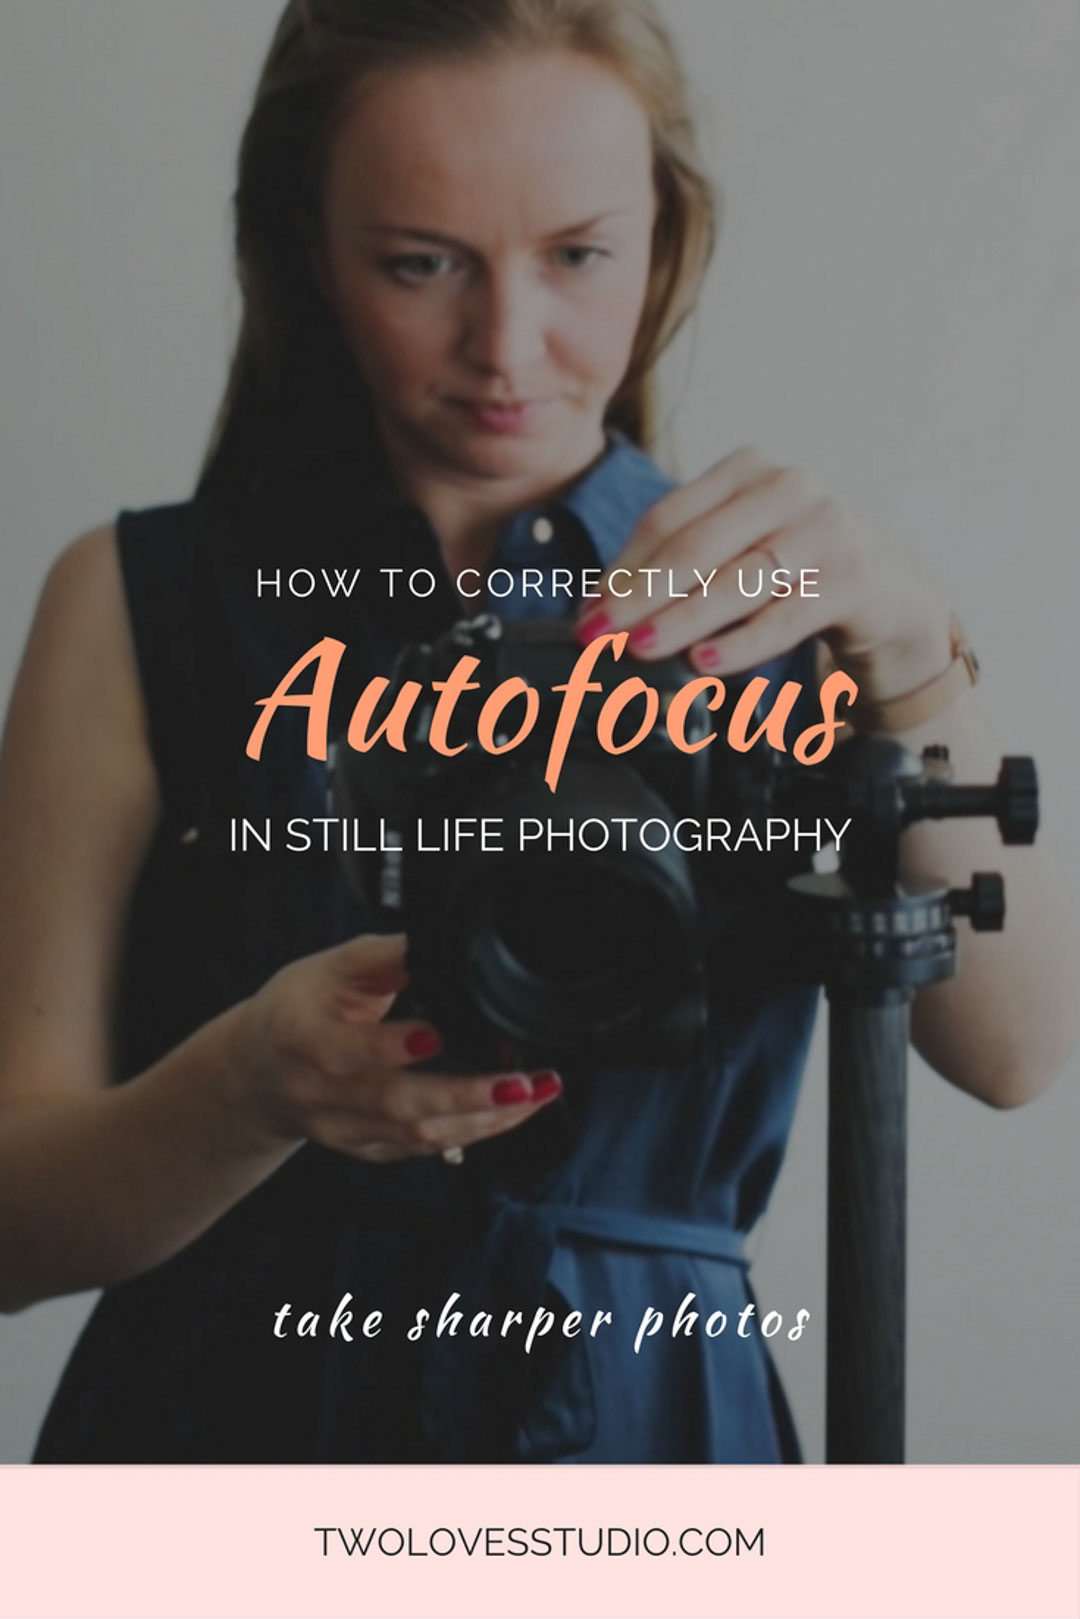 Autofocus is bad. True or False? How to correctly use autofocus for still life photography to get sharp images.